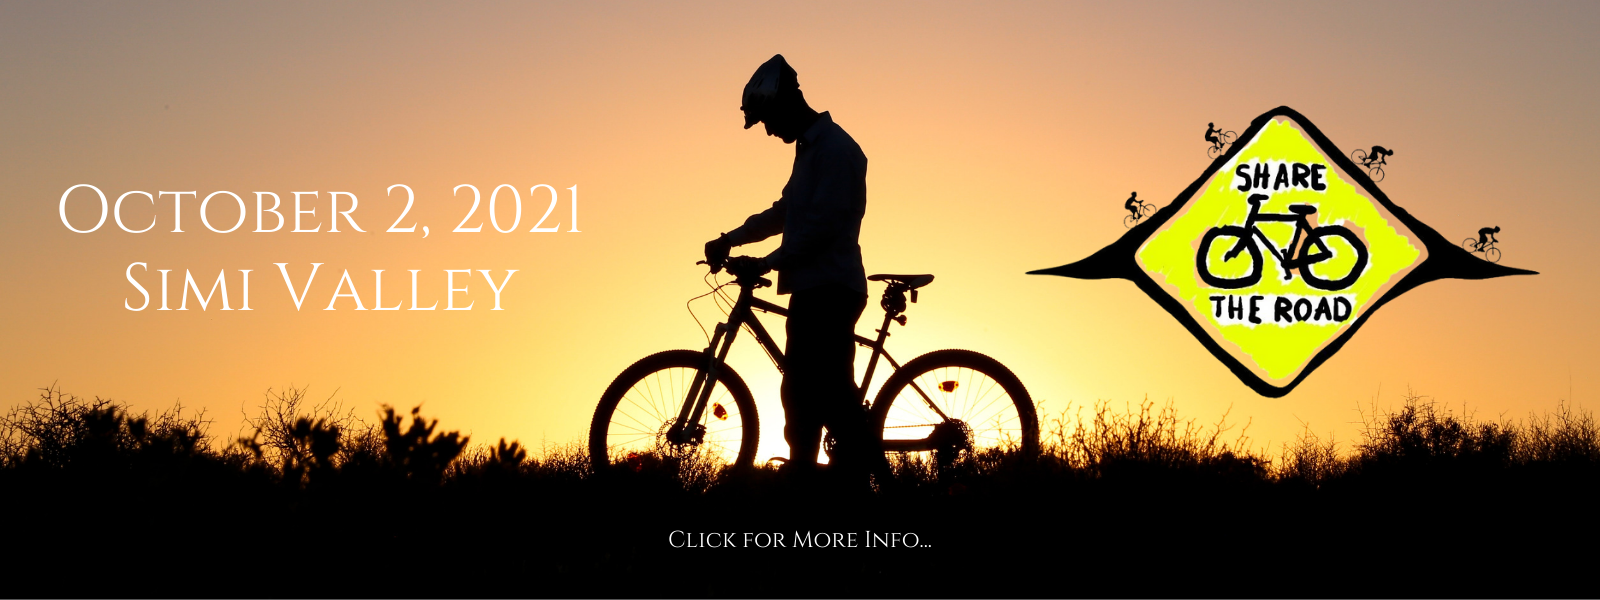 Share the Road Ride 2021